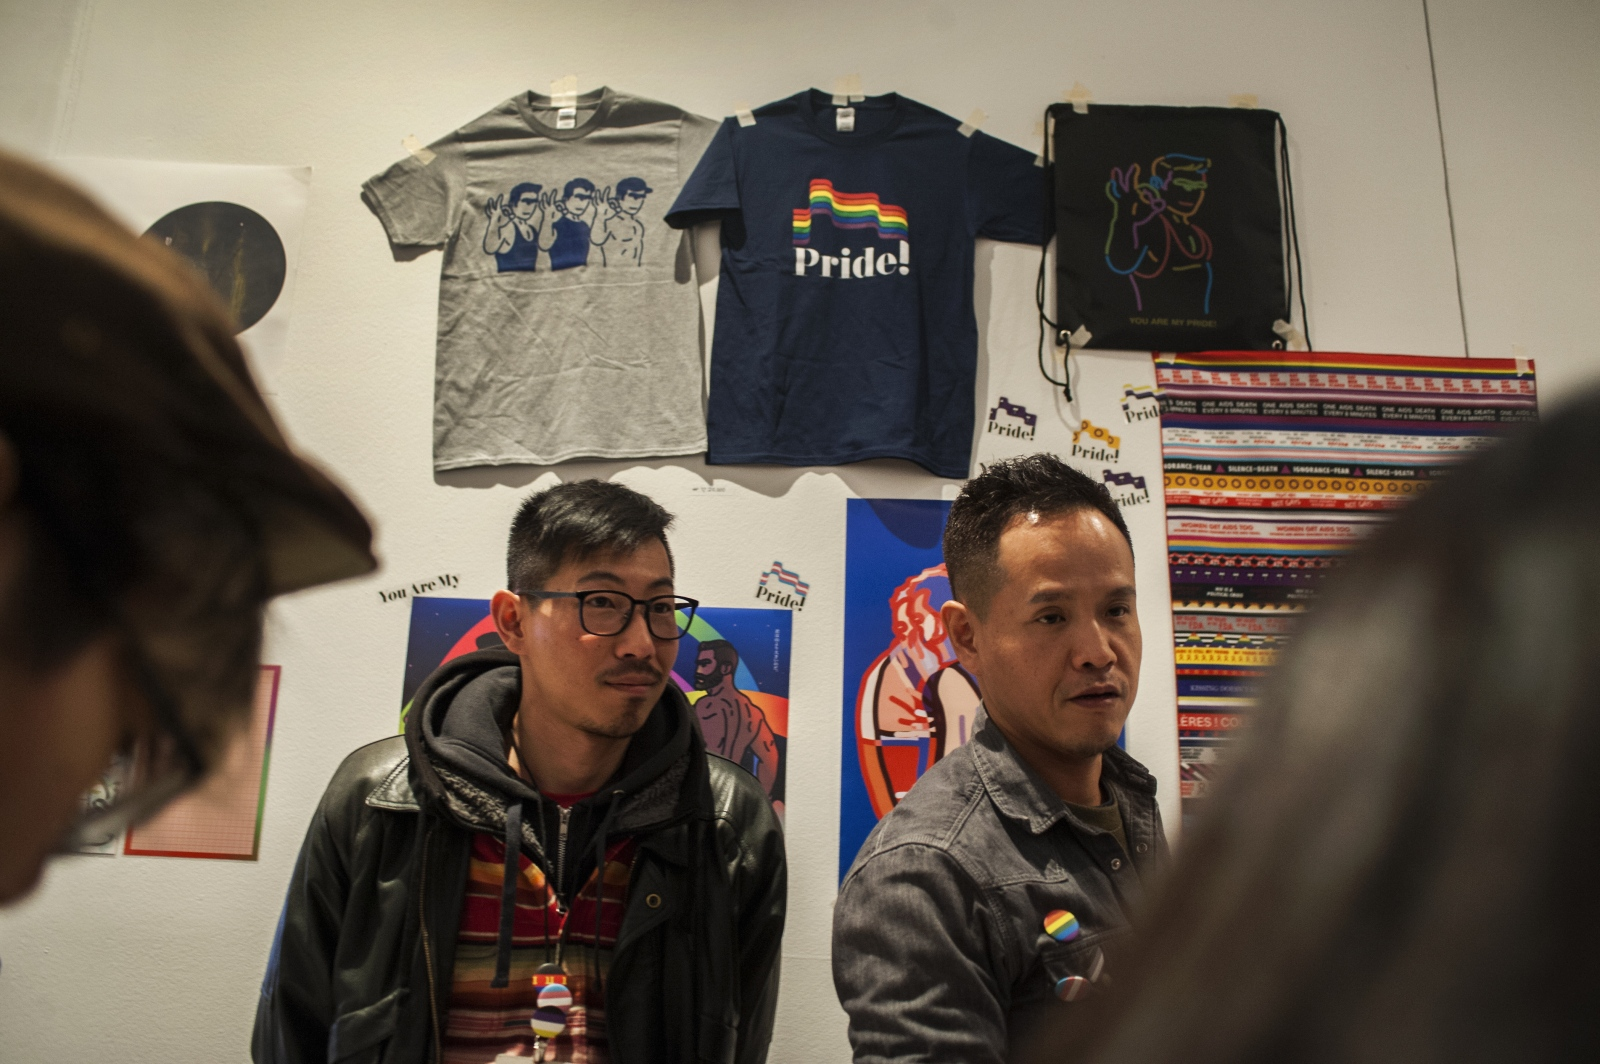 """Jeon (left)'s artwork often appears on posters, t-shirts, queer publications, badges, anything and everything to raise visual awareness of queer issues and identity in Korea. Above, he is pictured at the Northern Seoul Museum of Art for an annual art book fair called """"Unlimited Edition"""" with his partner Hyung-joo Kim, 40, selling pride merchandise and a queer publication he designed, called Flag."""